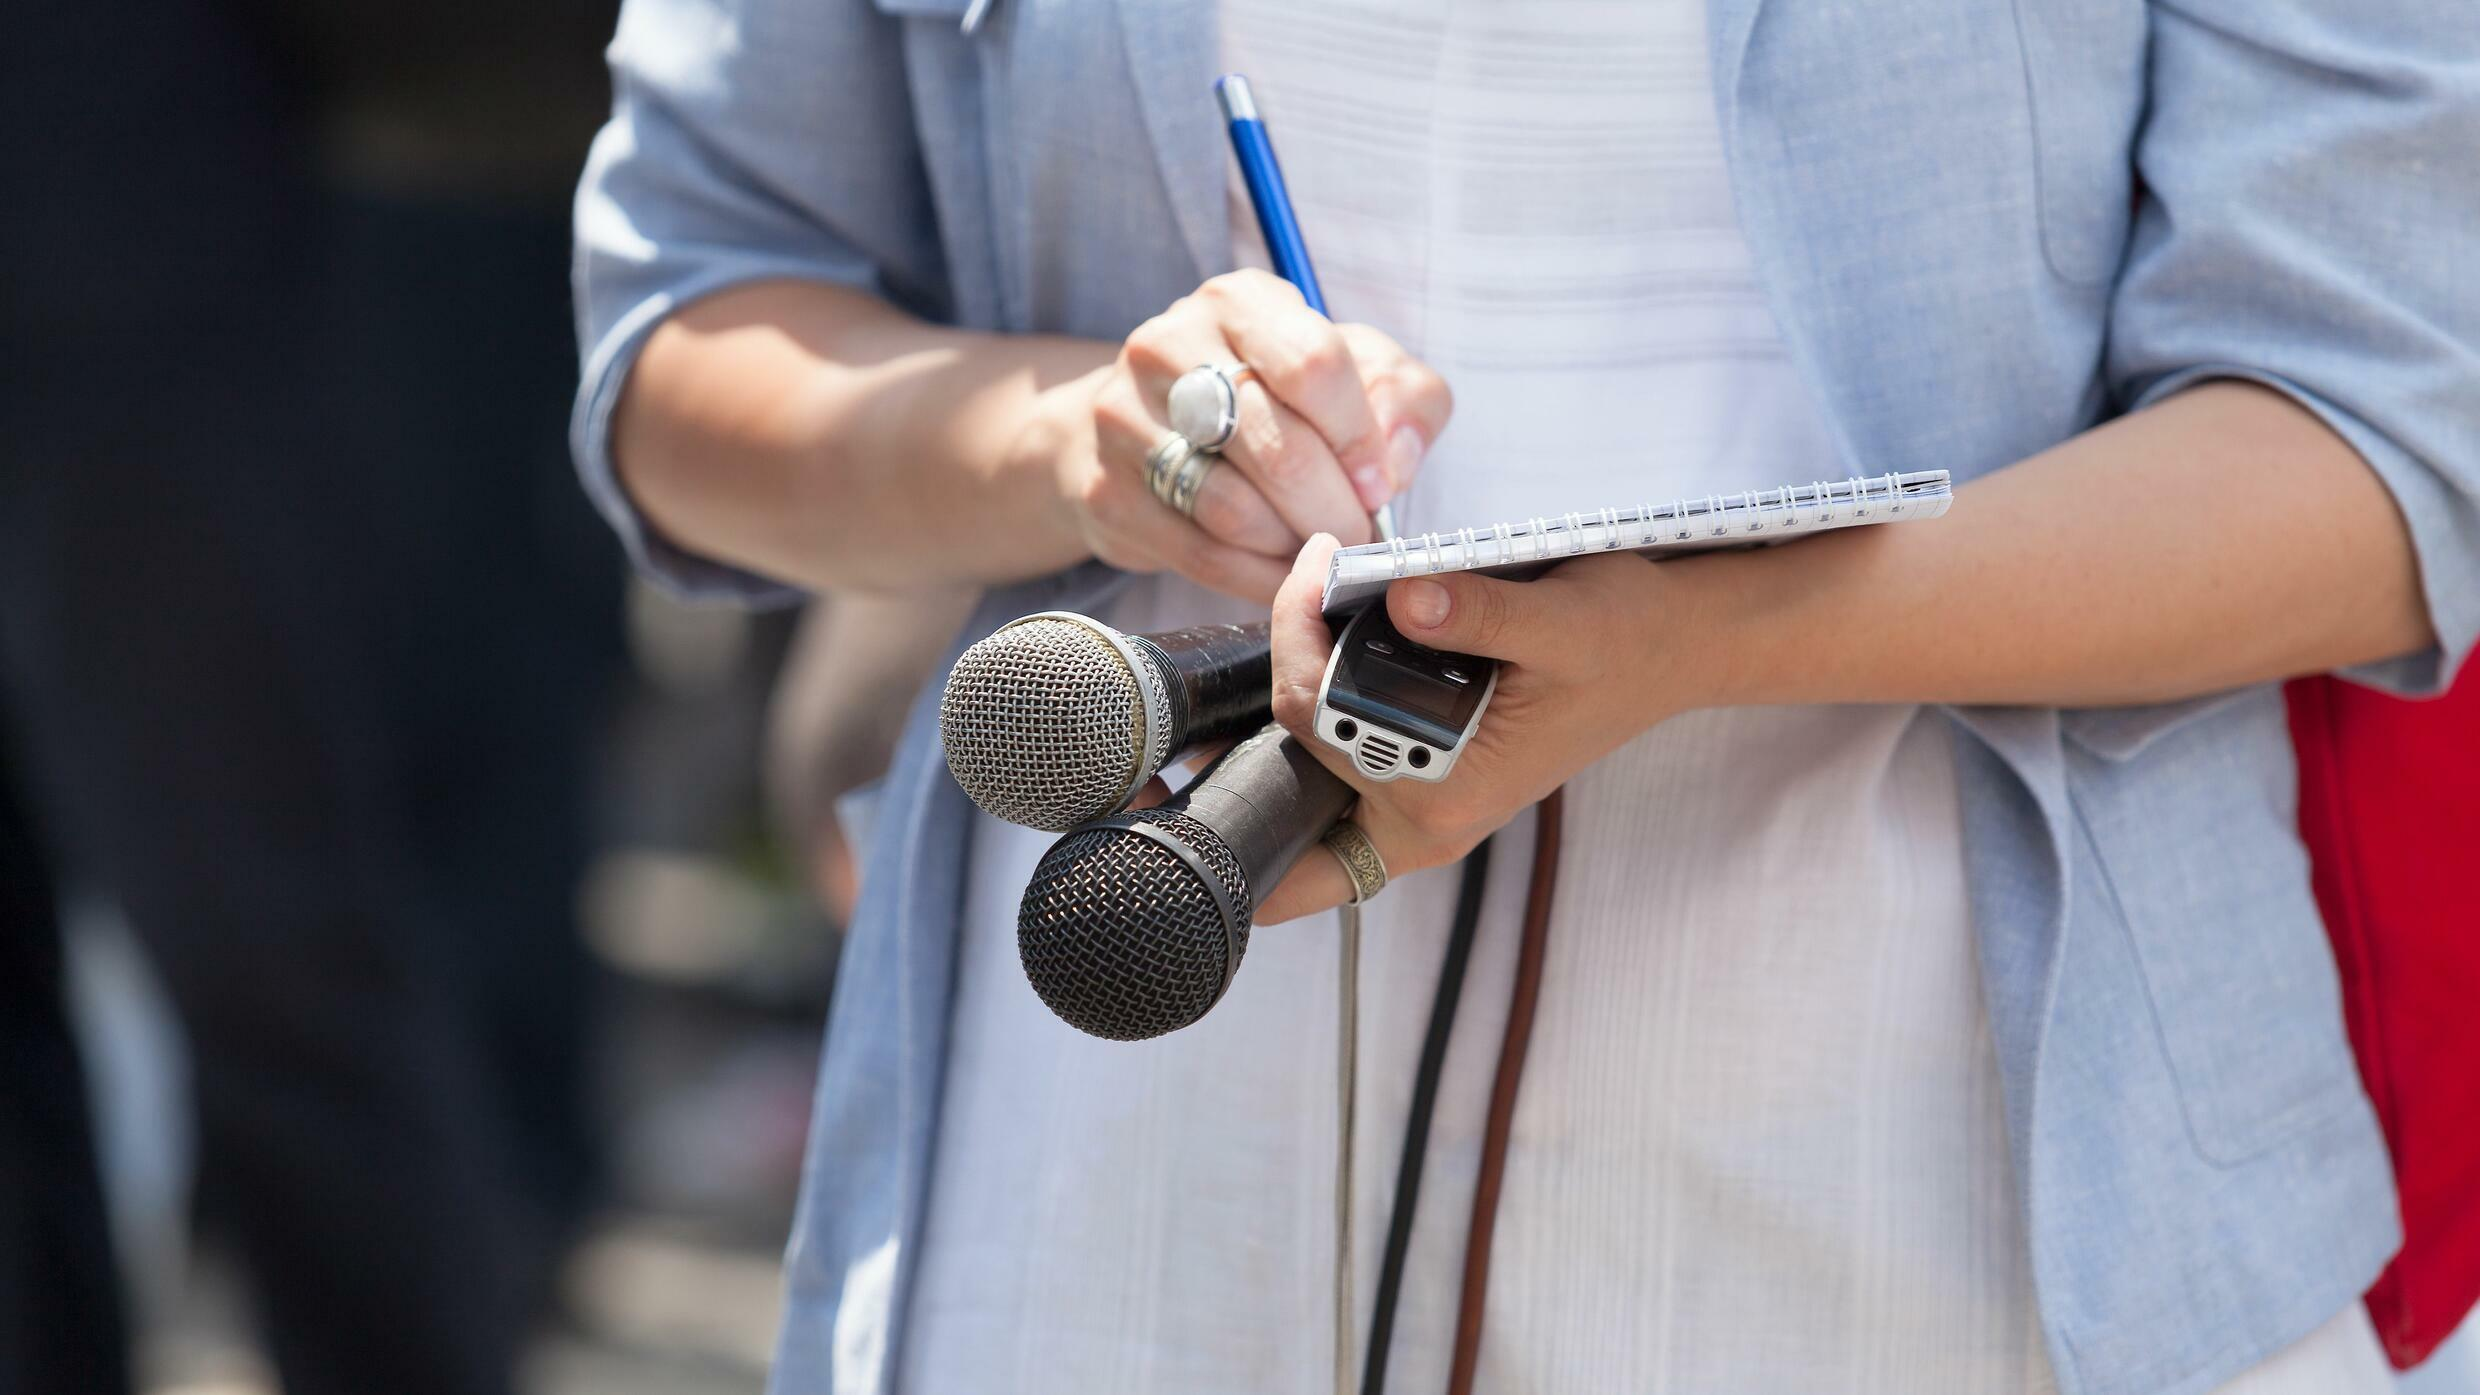 midsection-of-journalist-holding-microphones-while-writing-on-note-pad-878027776-5ae3885e04d1cf003cf1fce5